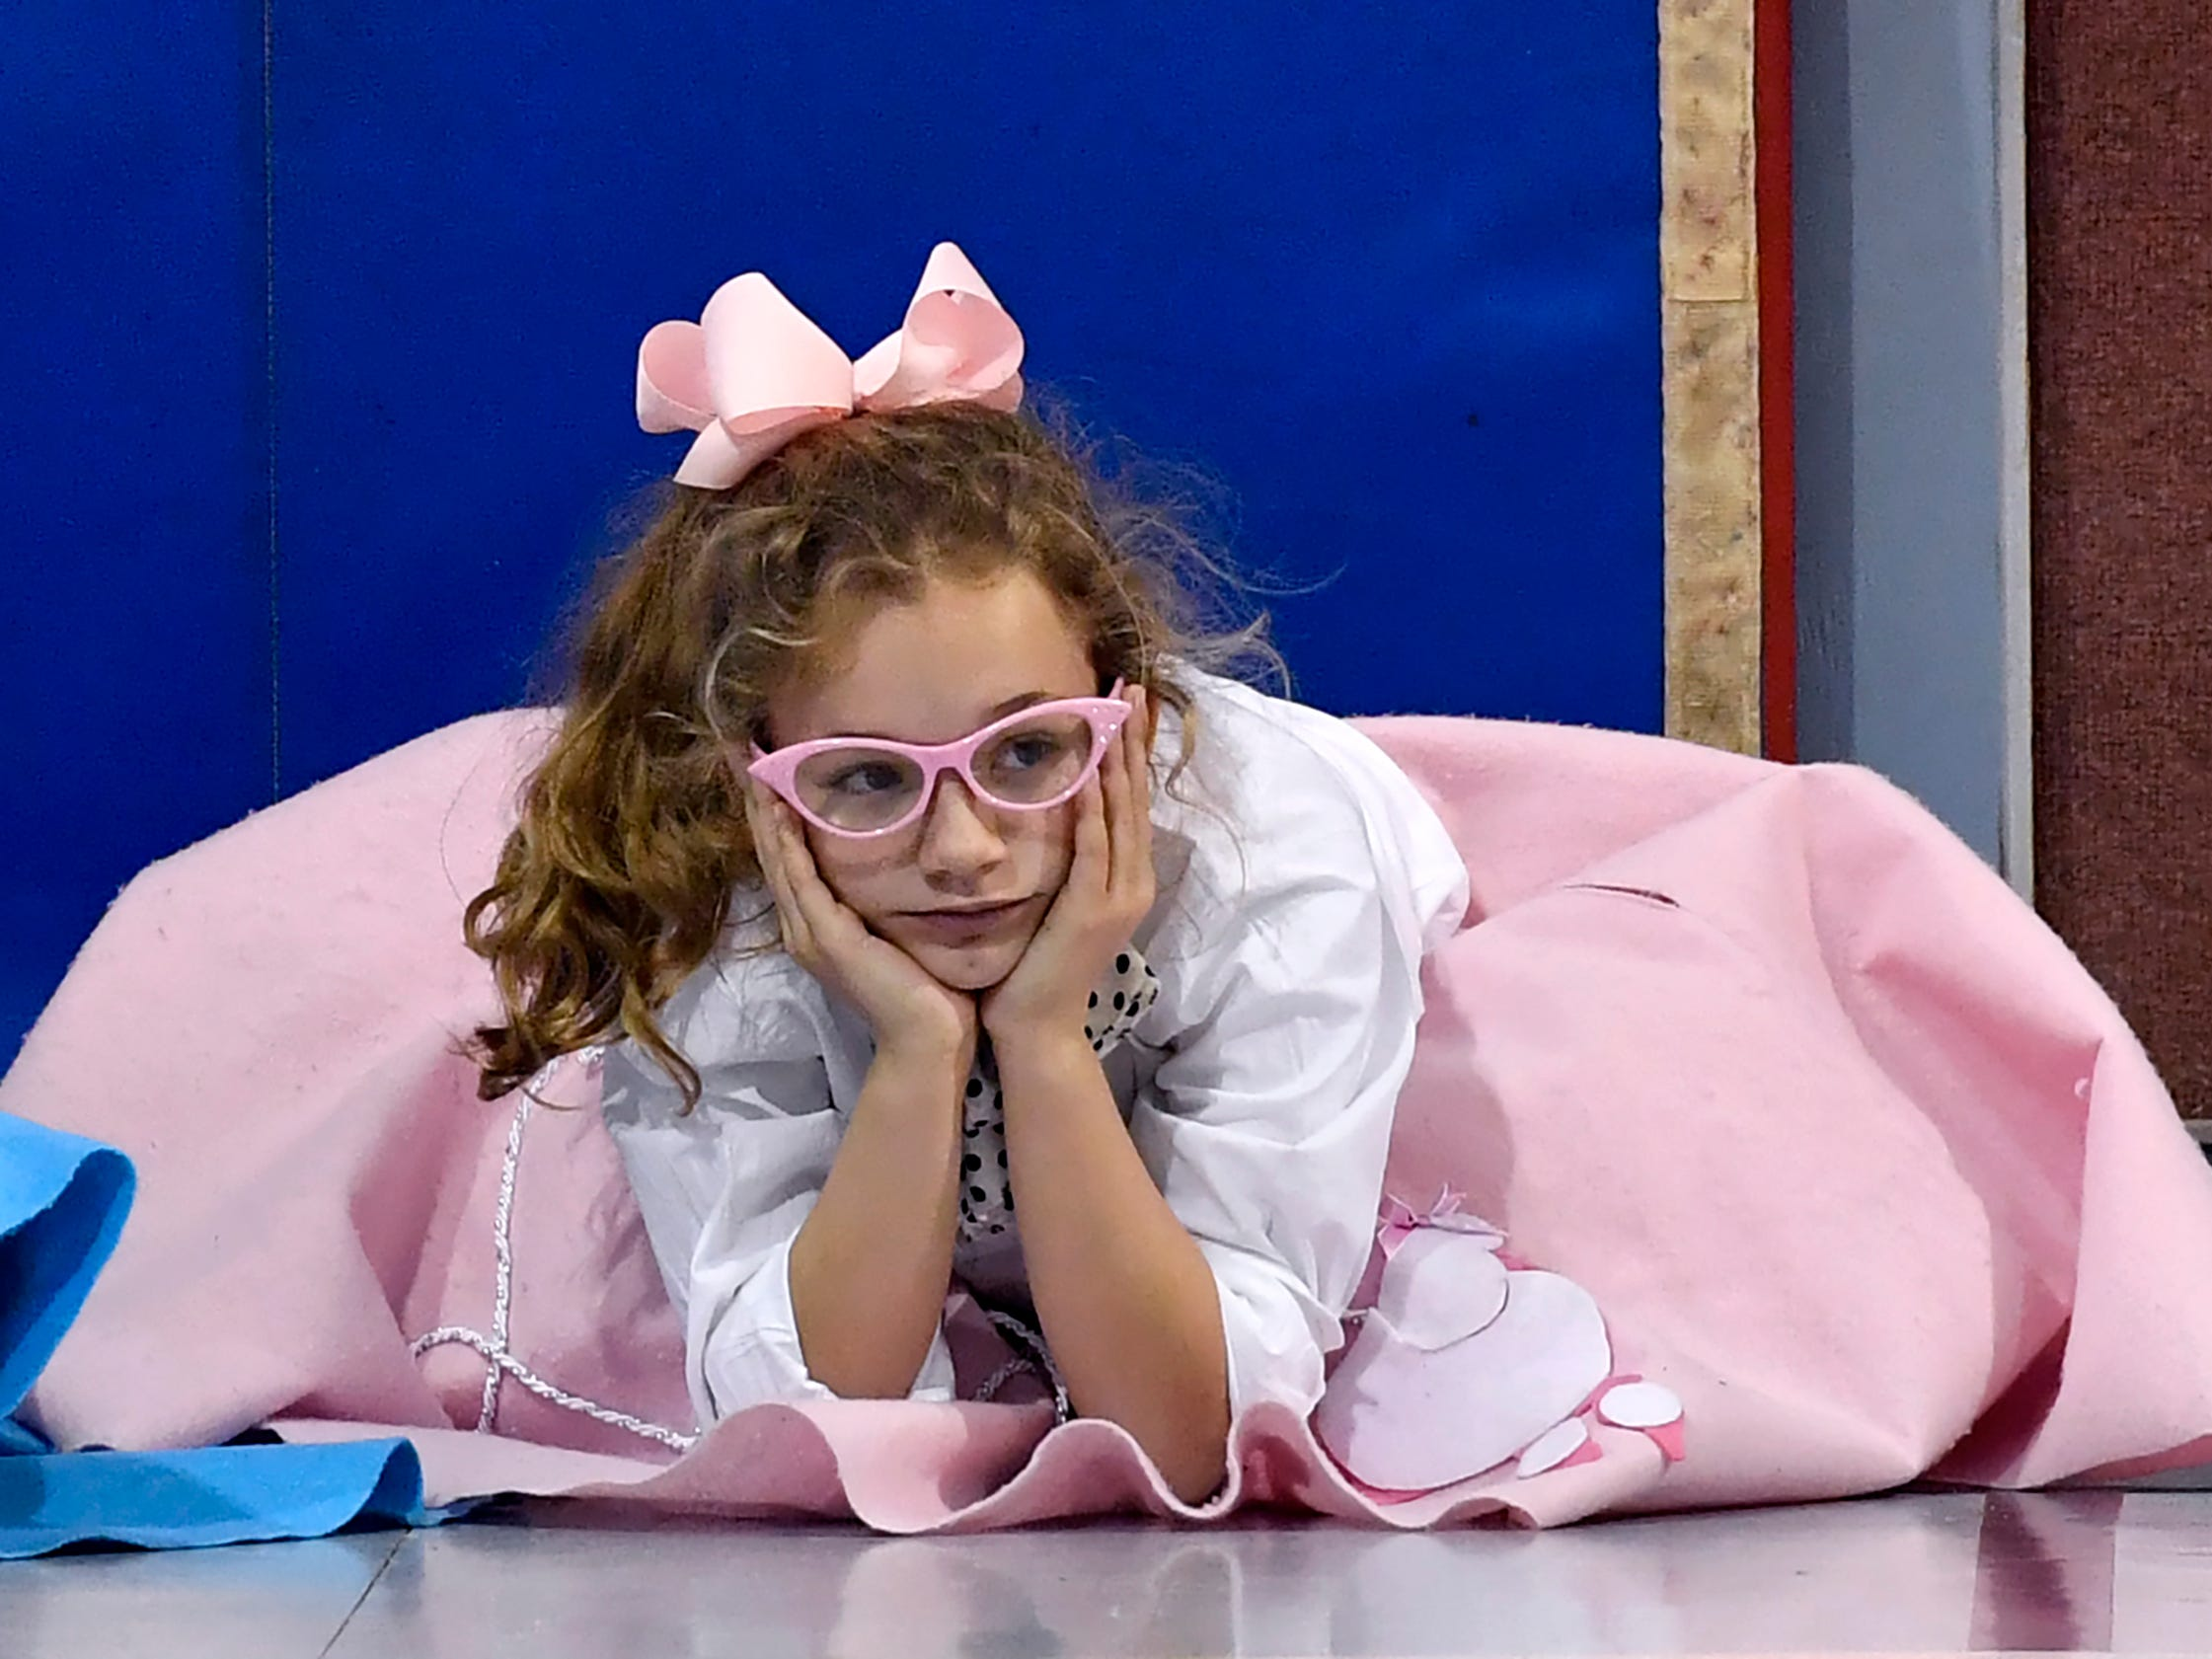 Brinley McAdams waits for the next game to start during Fifties Day at the Austin Elementary School gymnasium Jan. 25, 2019. Students from all grades participated in games and dances during Fifties Day.